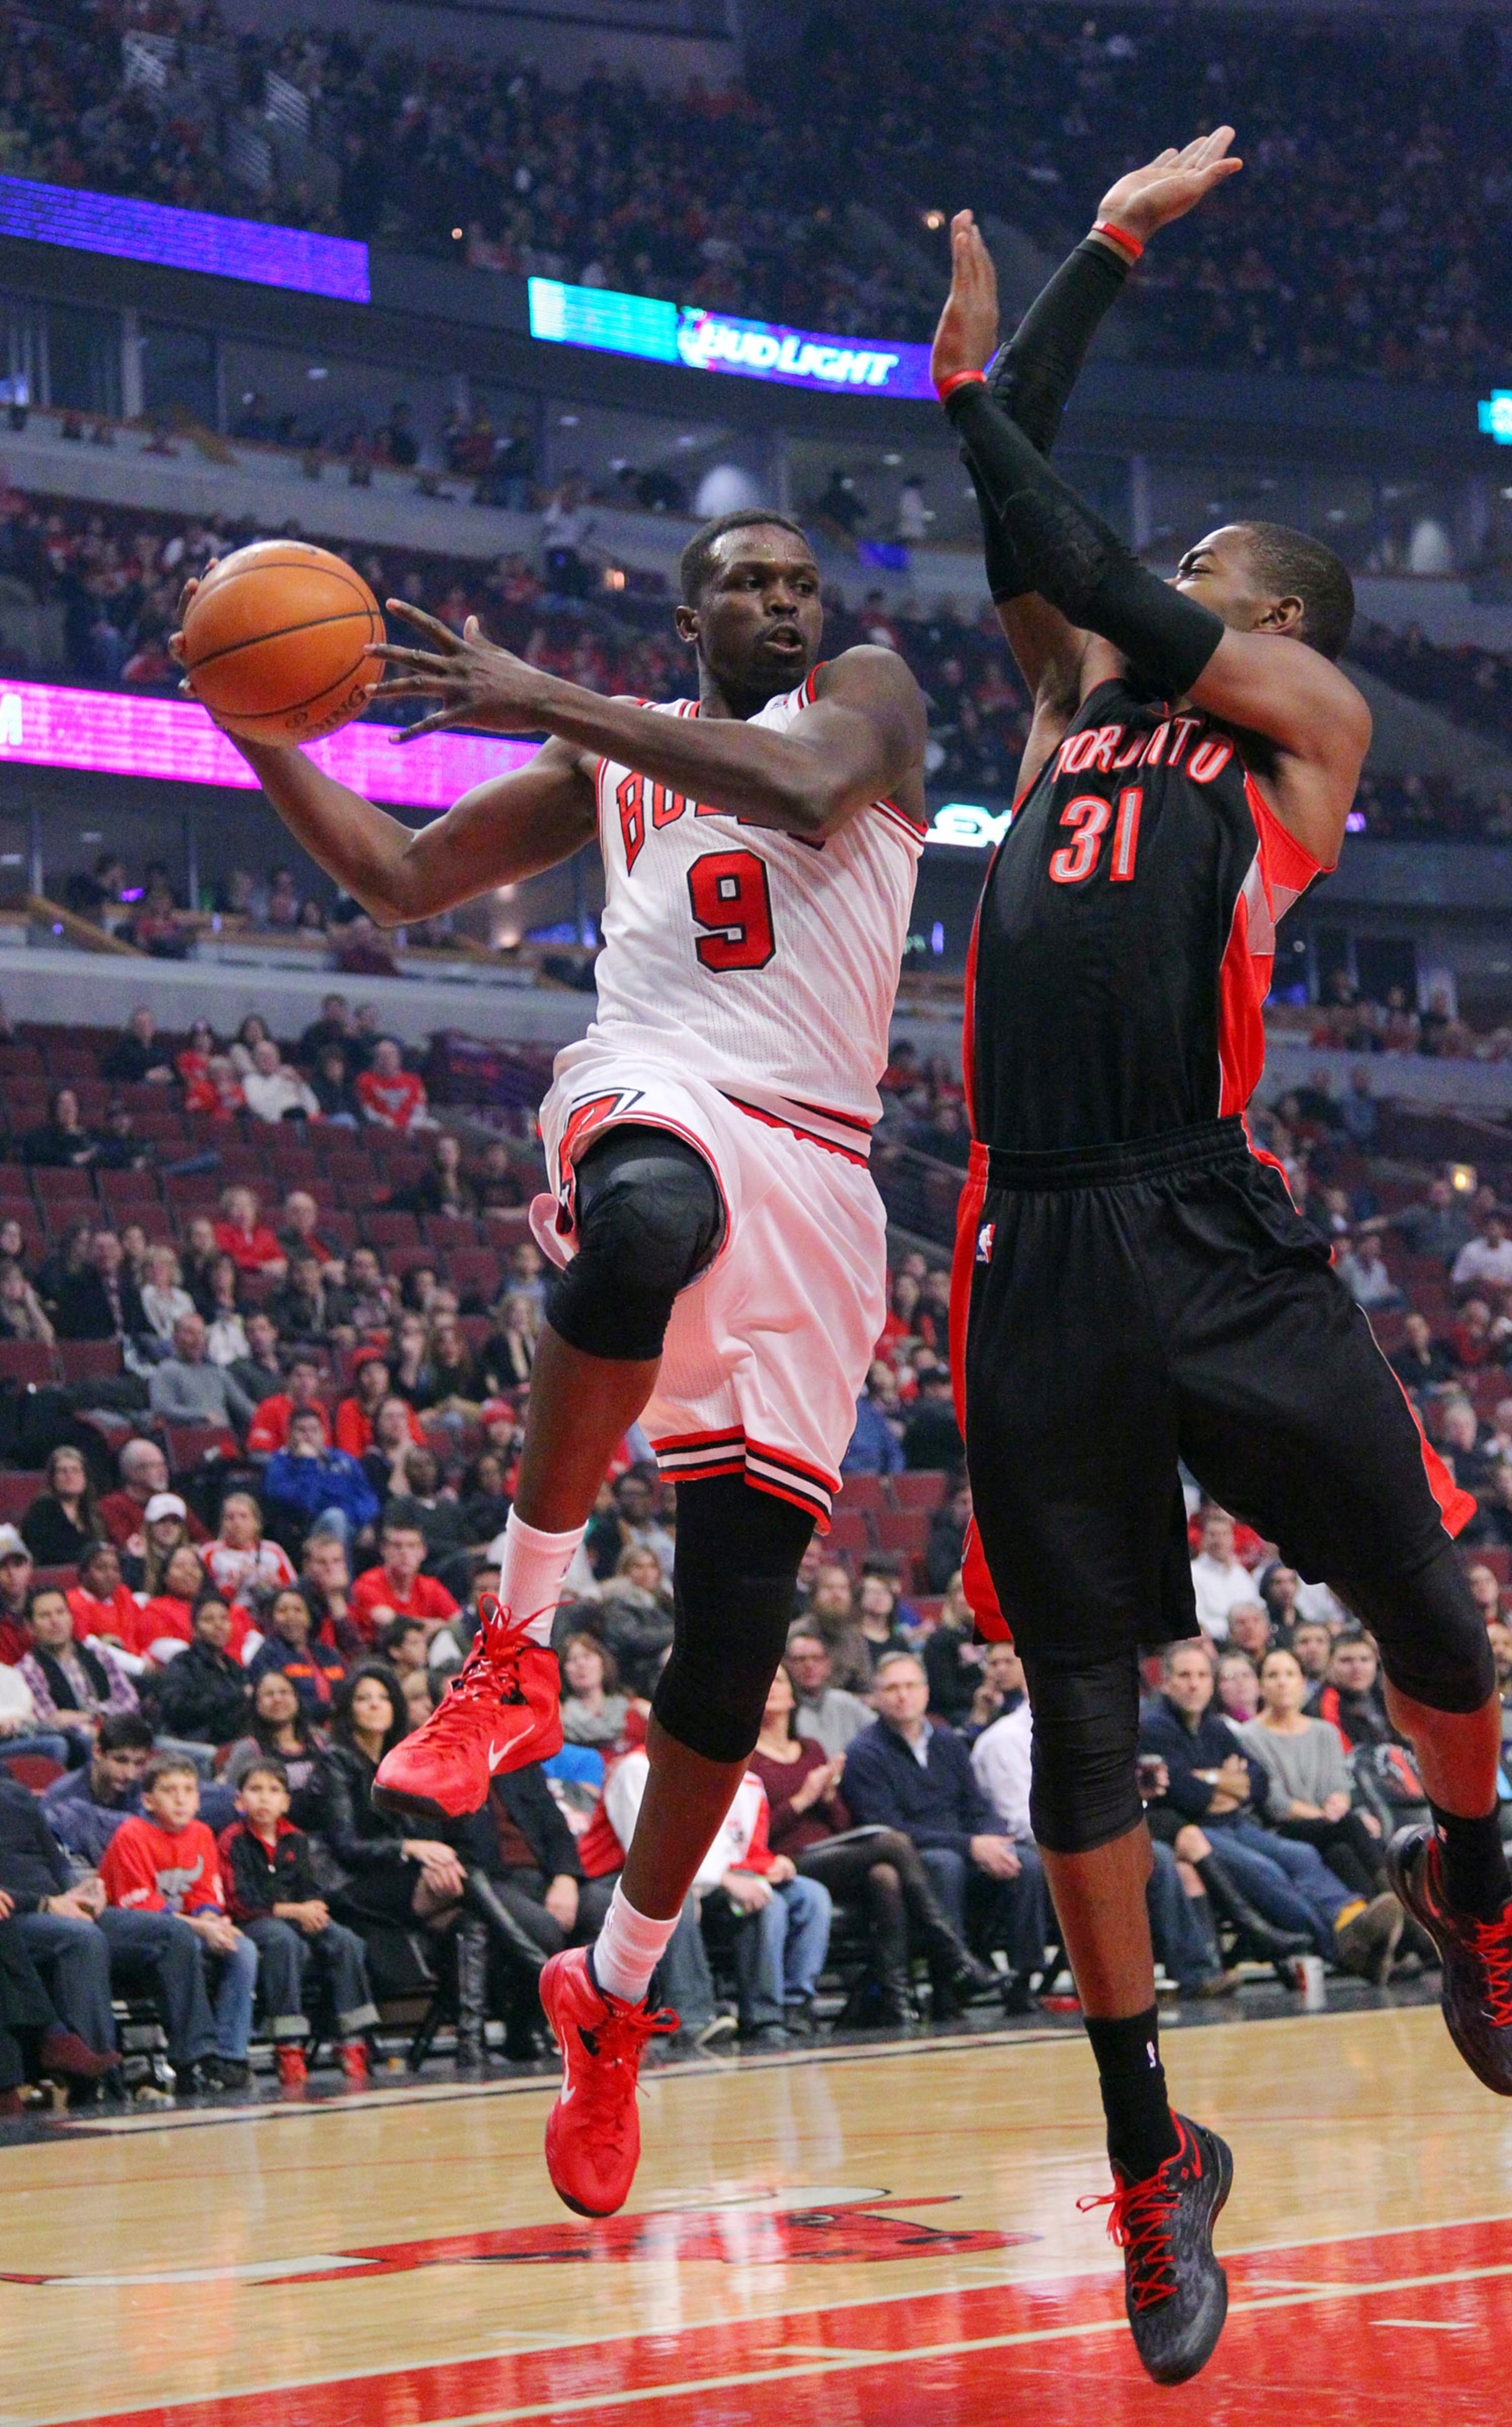 Bulls aim to trade Luol Deng and amnesty Carlos Boozer, according to report